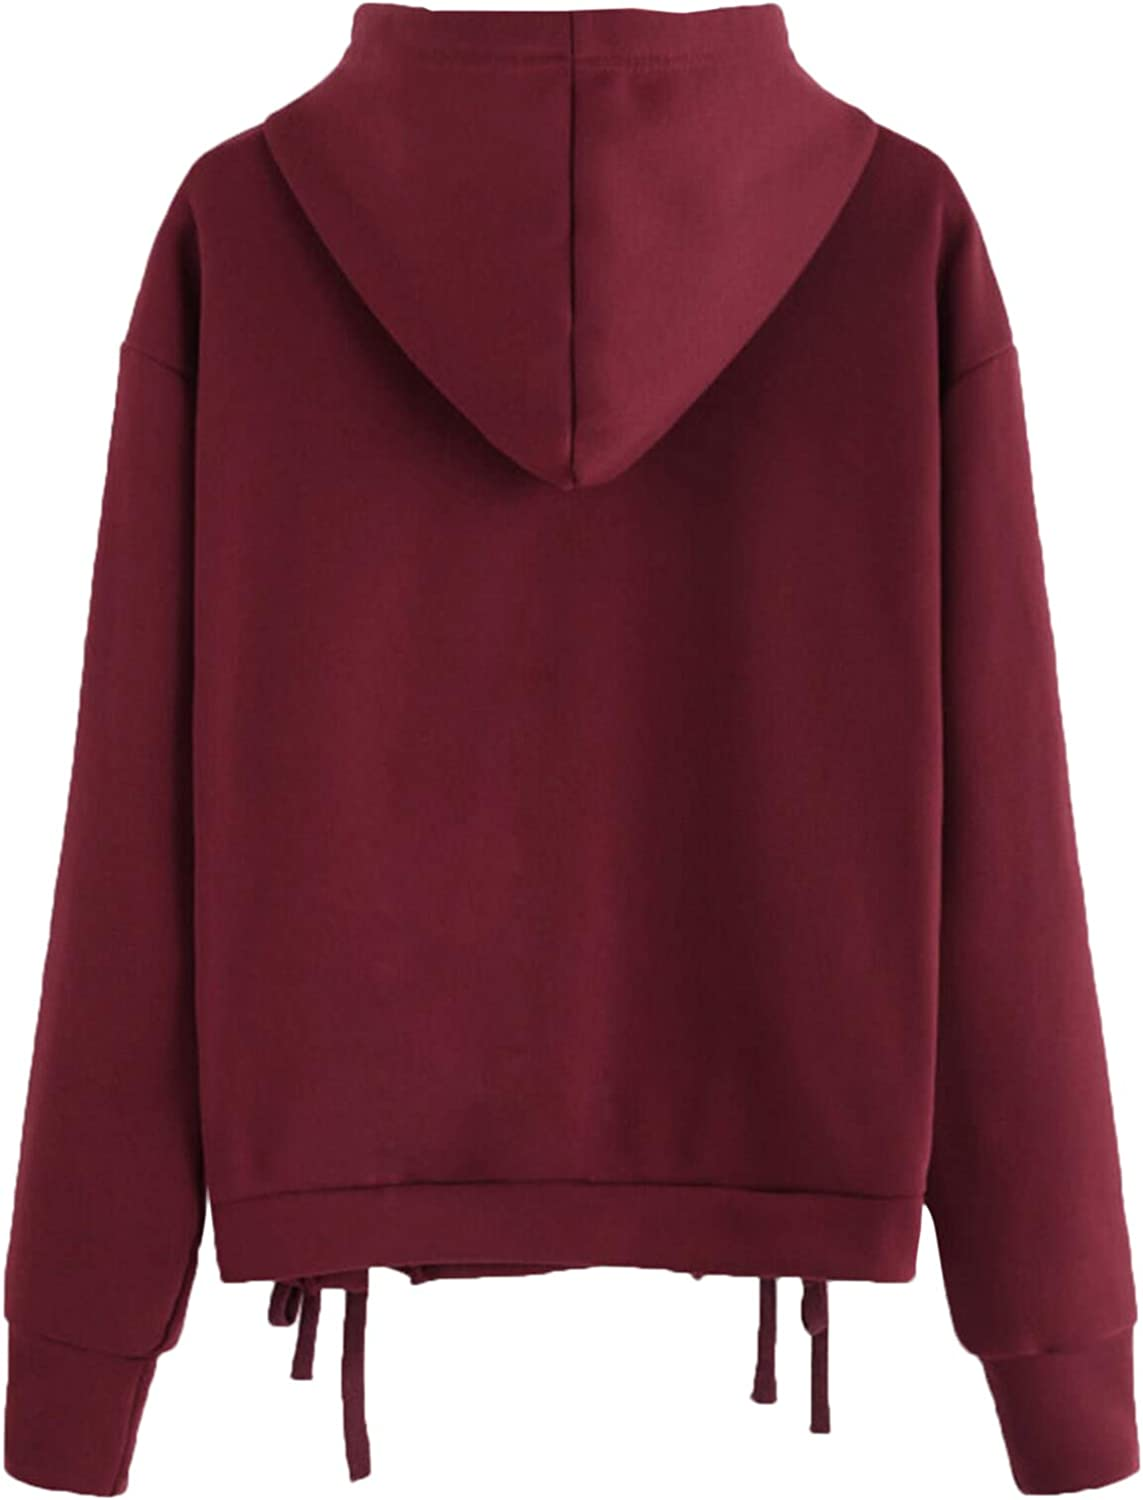 Milumia Womens Lace Up Drawstring Pullover Sport Casual Plus Hoodie Sweatshirt